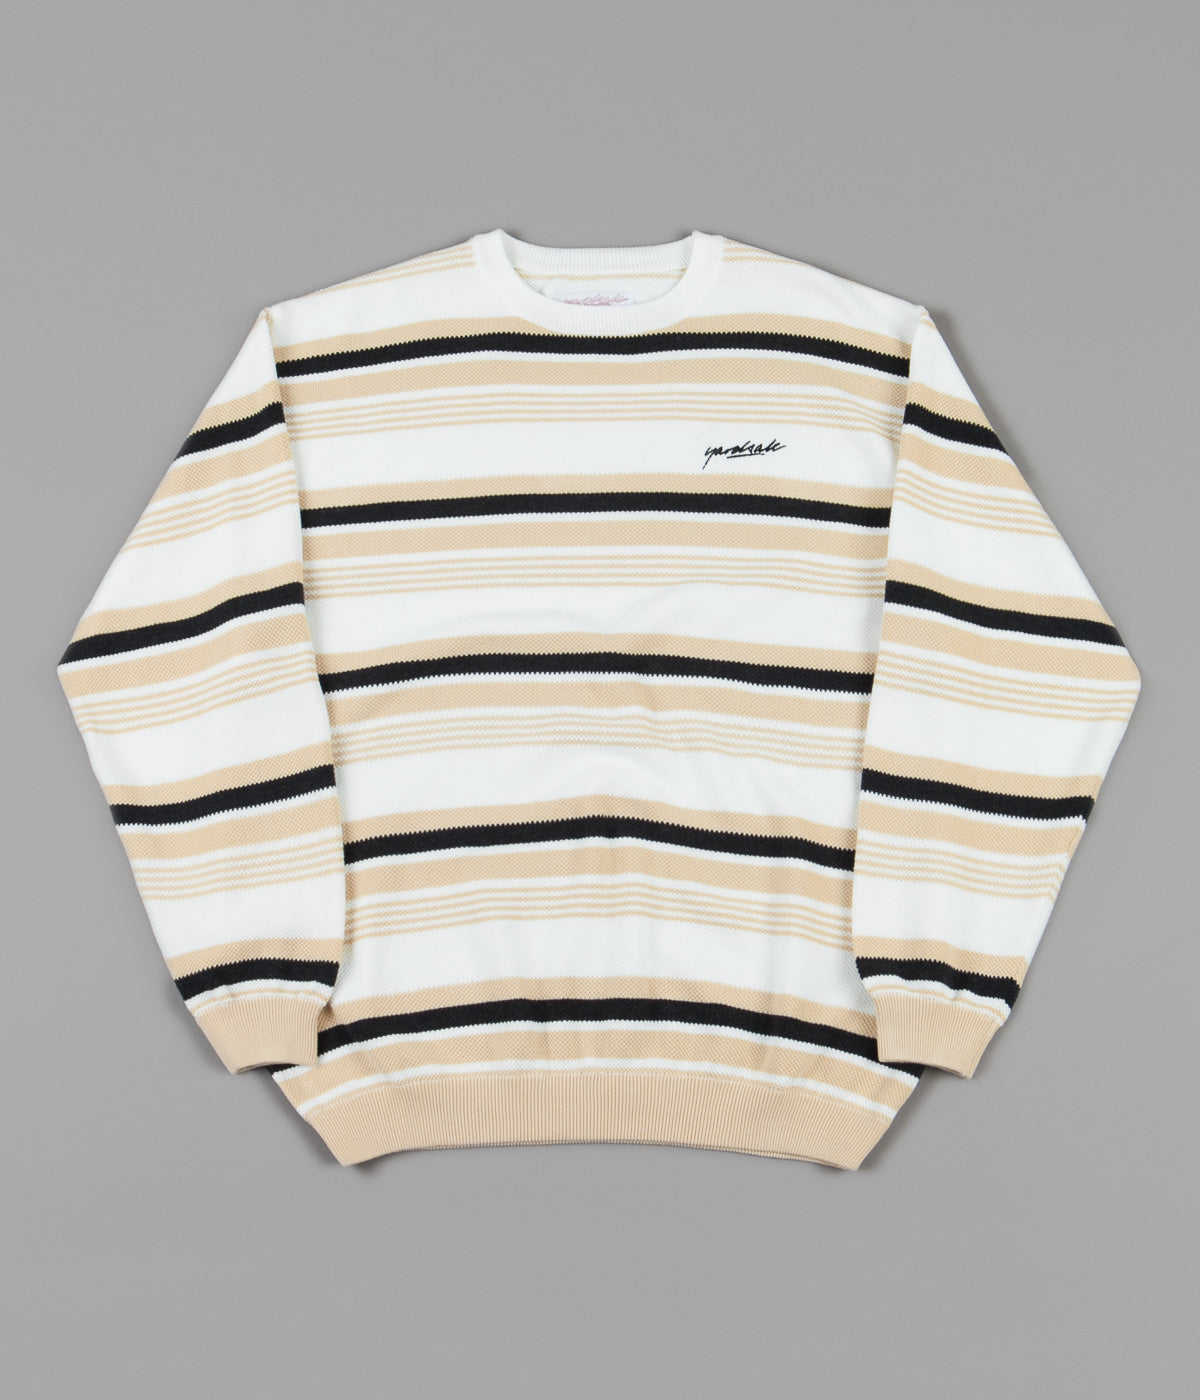 Yardsale Mirage Crewneck Sweatshirt - Beige